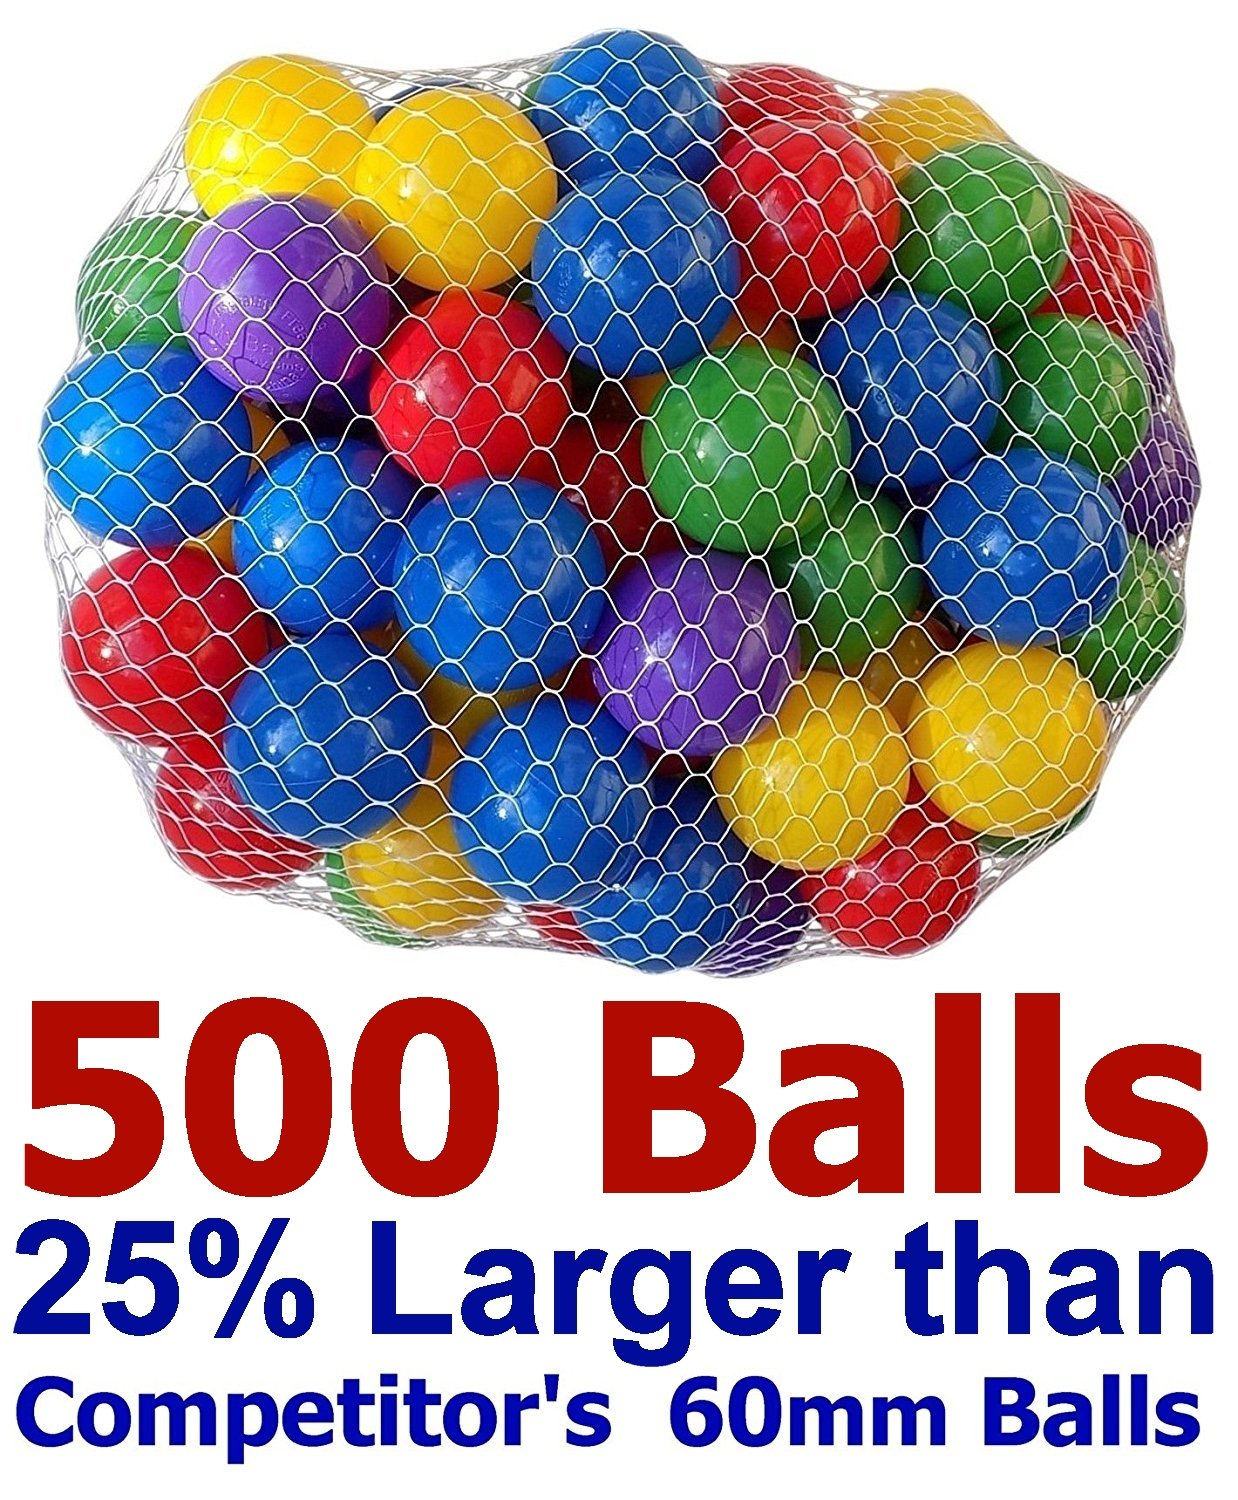 Pack of 500 Large Size 2.5'' Crush-Proof Ball Pit Balls - 5 Colors, Phthalate Free; BPA Free, Non-Toxic, Non-Recycled Plastic (Pack of 500) by My Balls